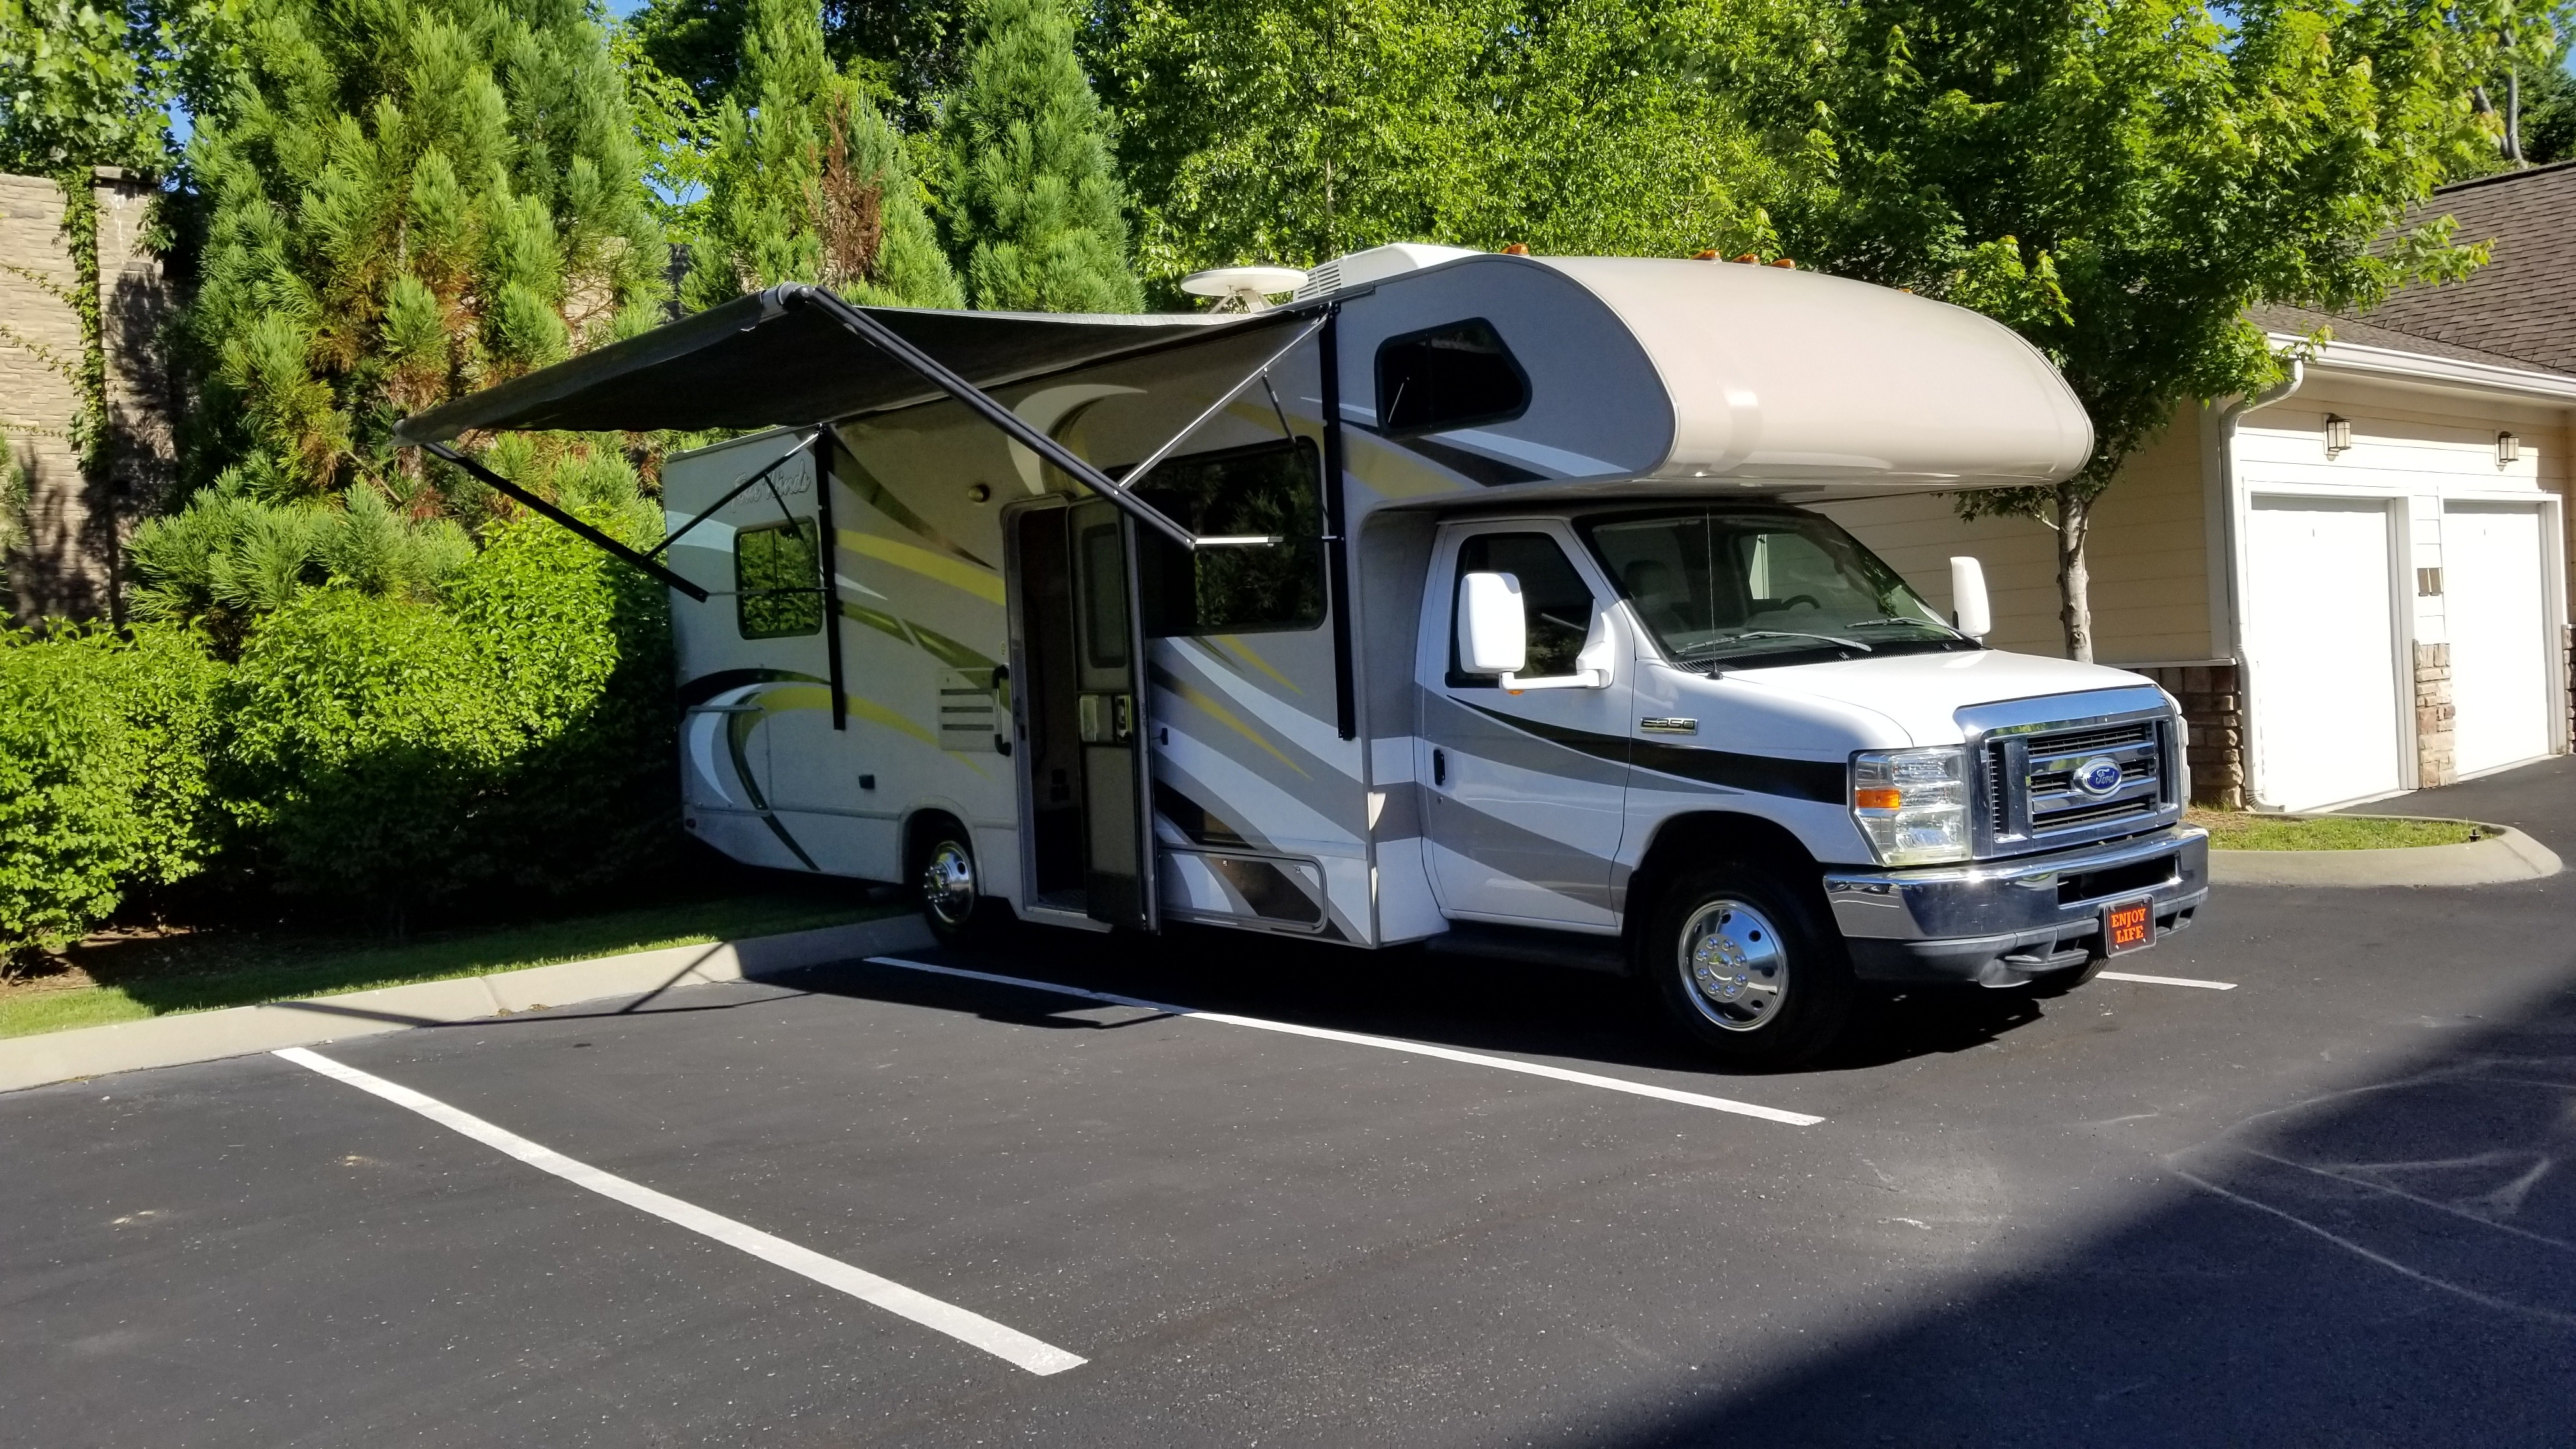 2016 Thor Four Winds 28A. Thor Motor Coach Four Winds 2016